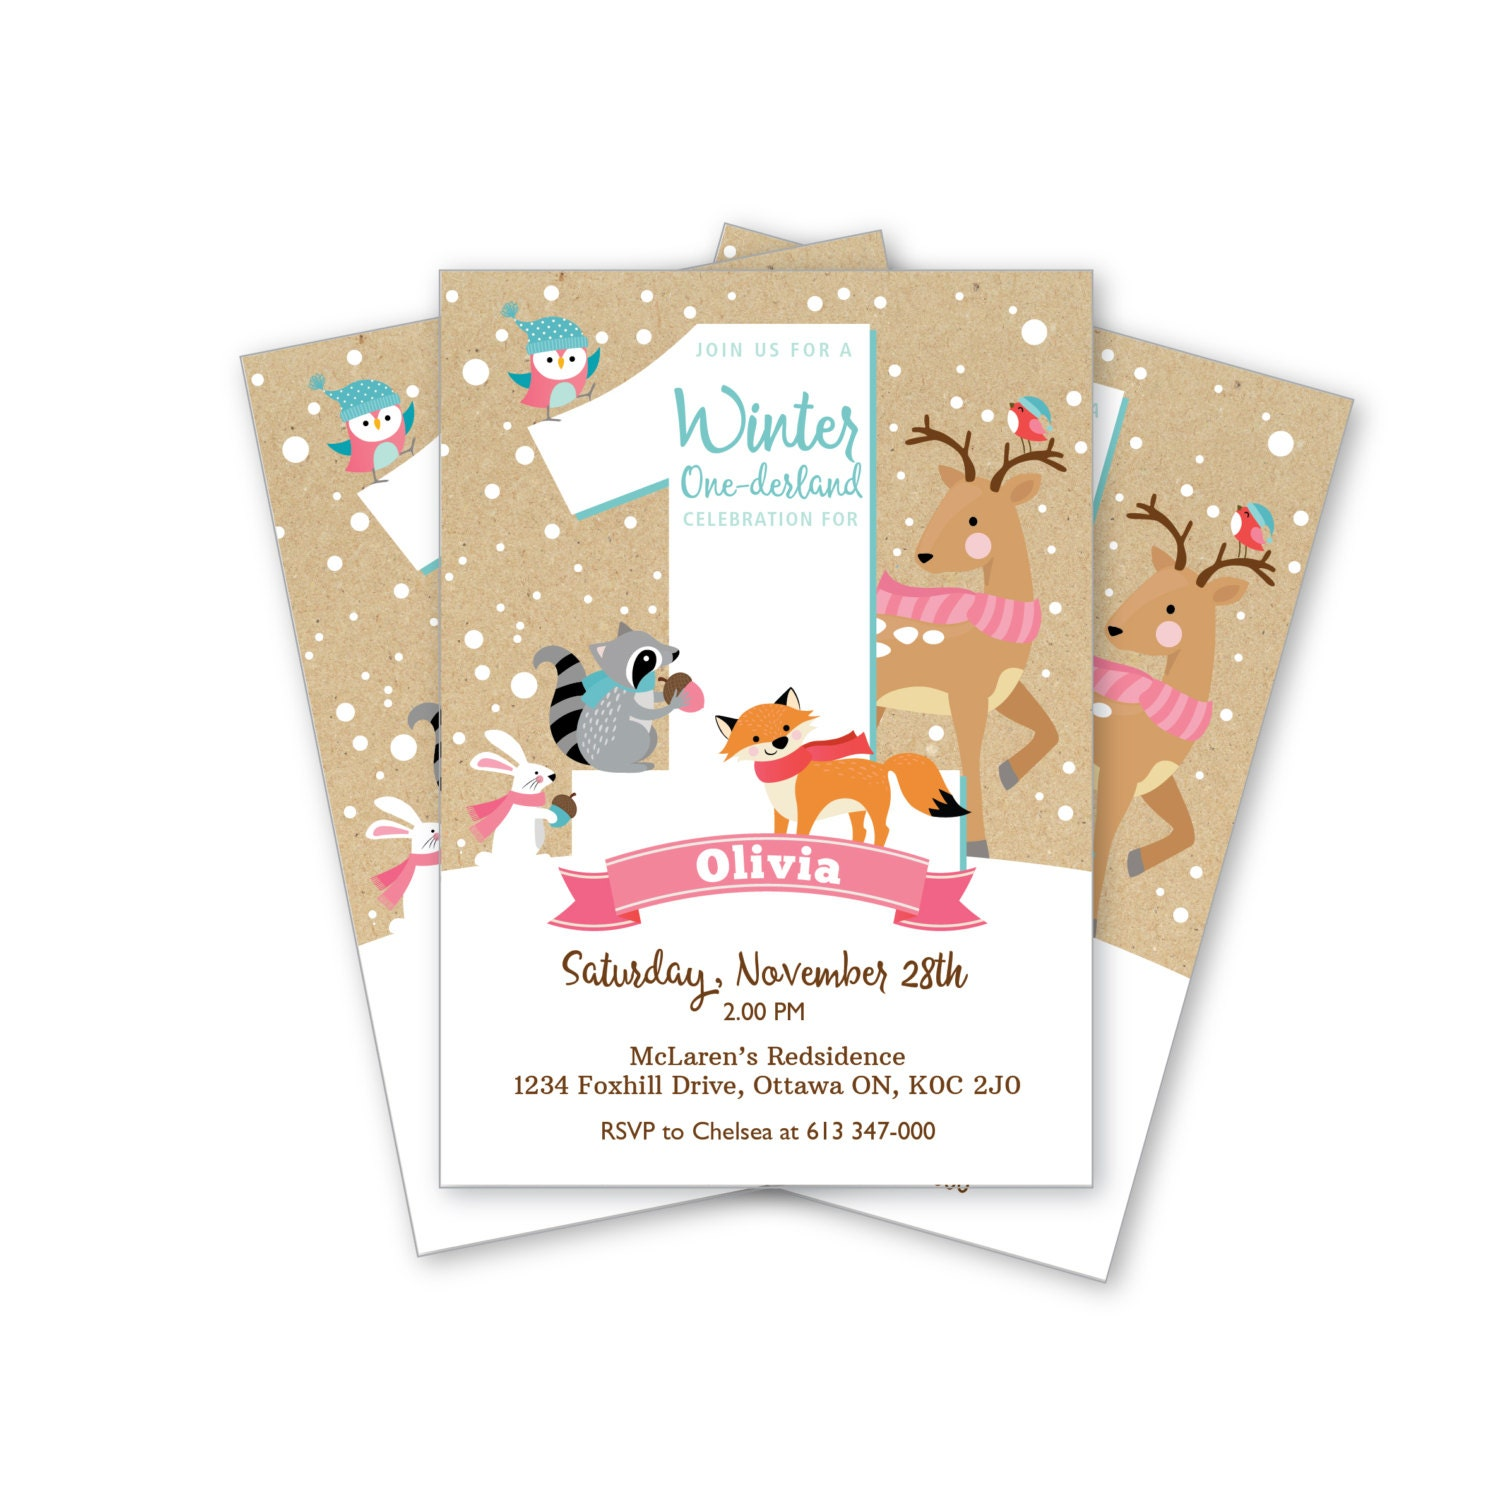 Winter Onederland First Birthday Invitation Printable